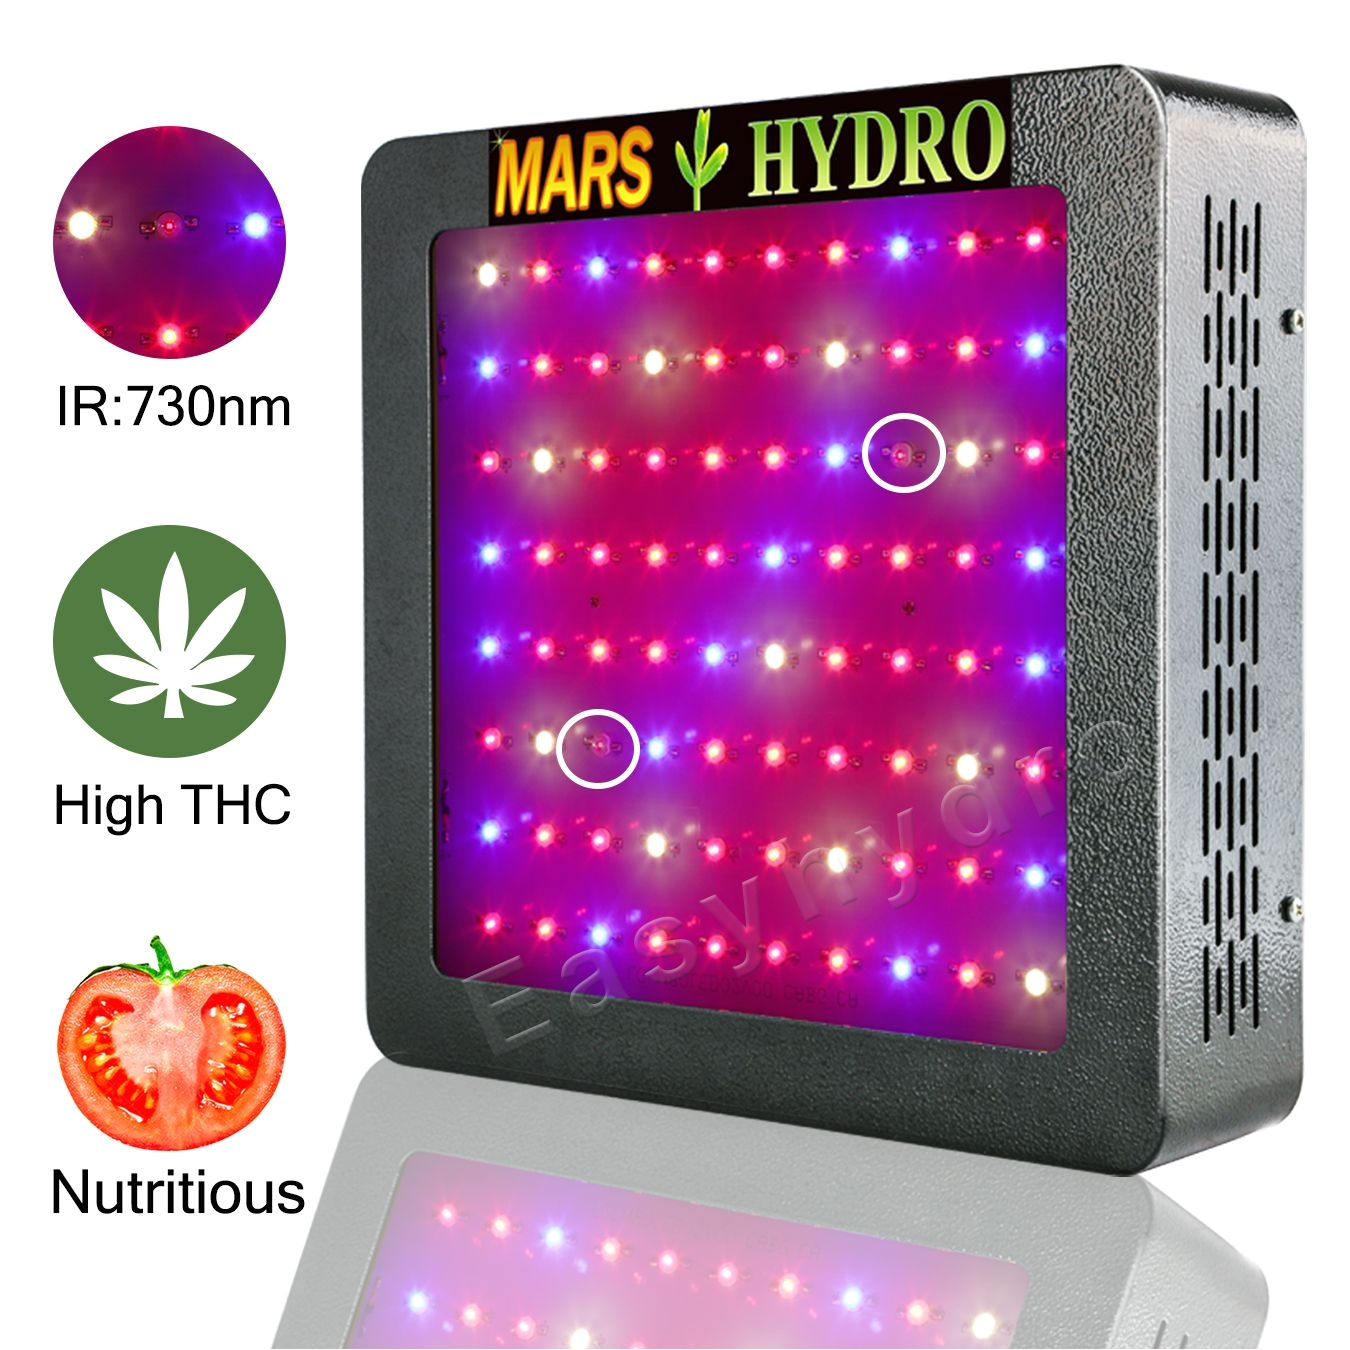 marshydro mars ii 400w indoor hydro led grow lights for full spectrum veg bloom medical herb plants with growth bloom switchesir best cooling system save